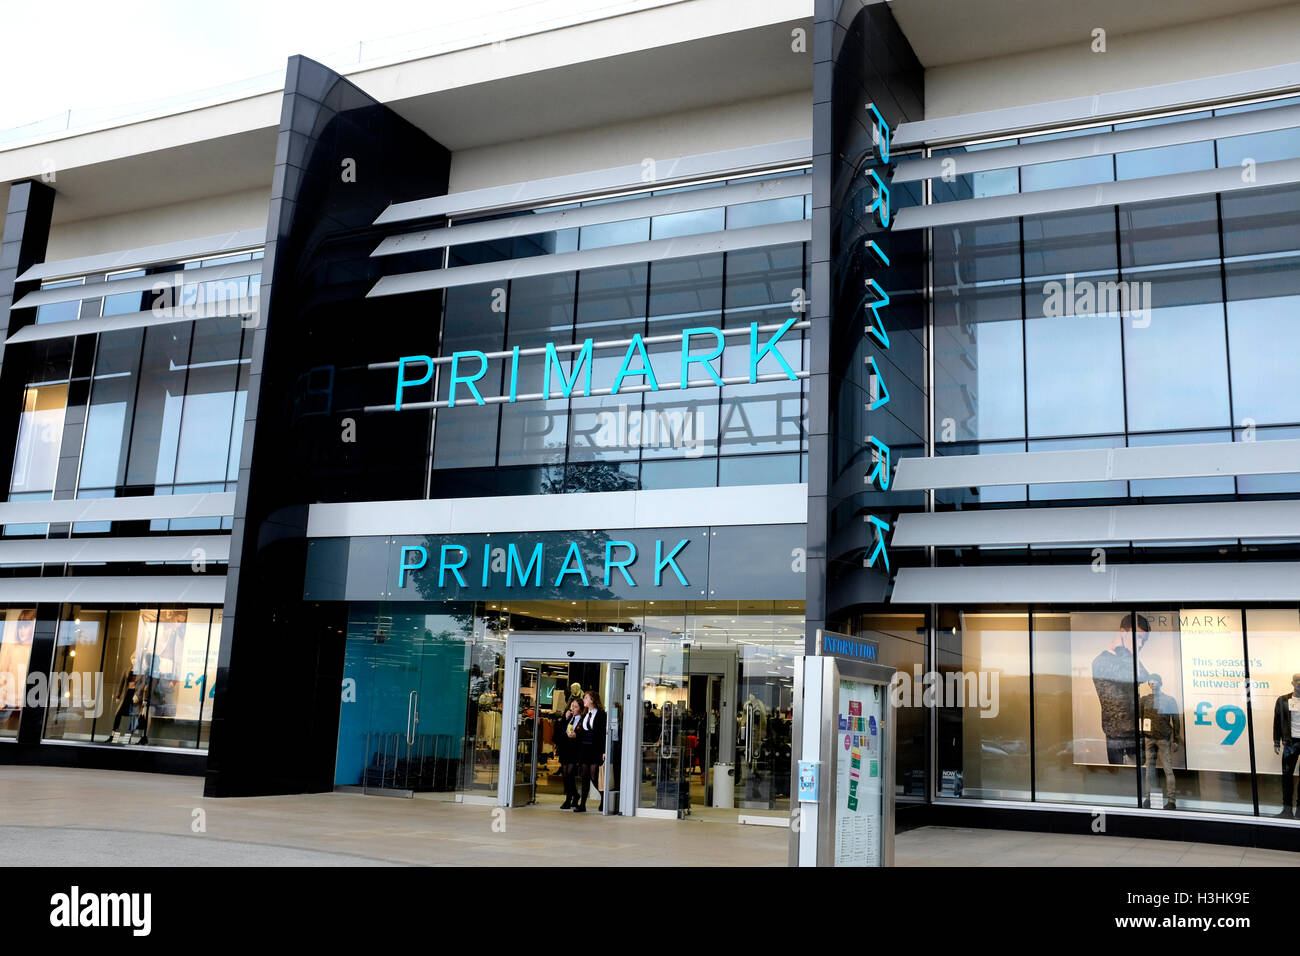 primark discount fashion chain store branch in westwood cross shopping centre east kent uk october 2016 - Stock Image